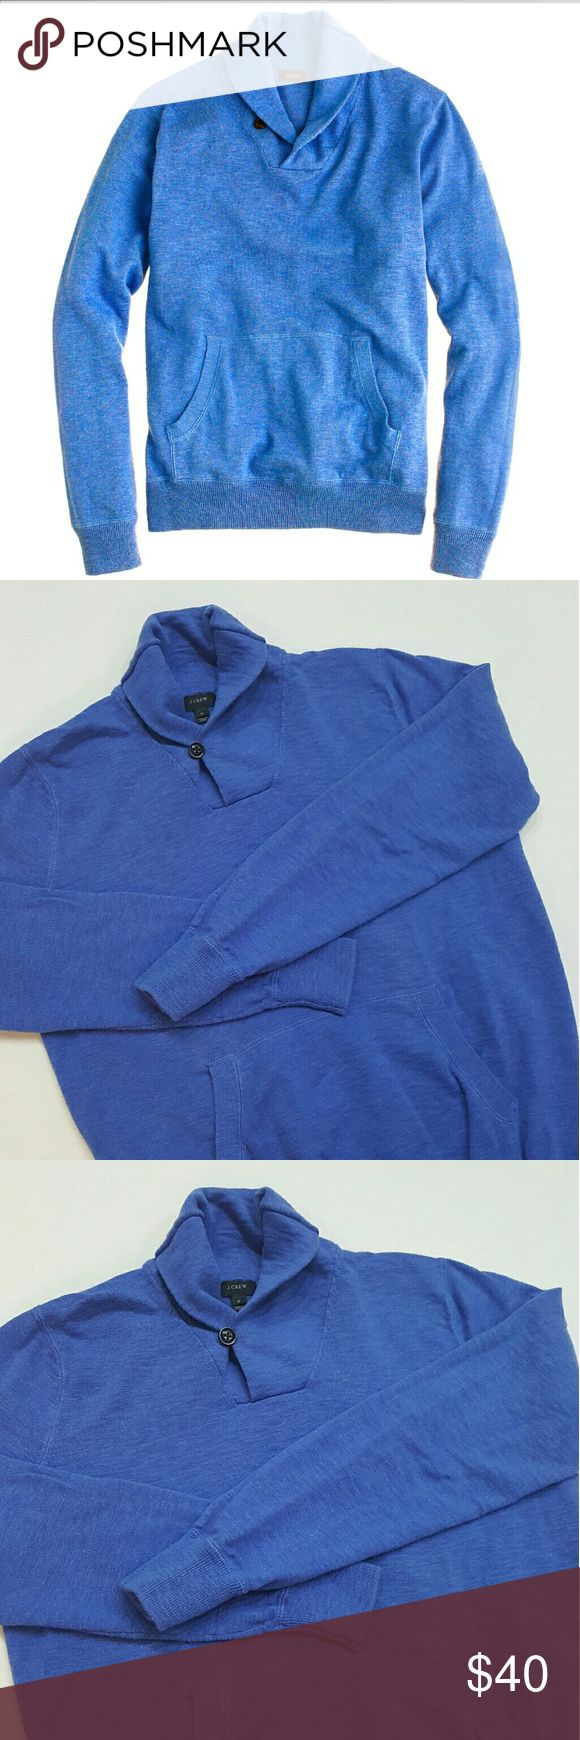 MENS- J. Crew Shawl-Collar sweater J. Crew men's shawl collar blue sweater with a  front pocket. In perfect condition. J. Crew Sweaters